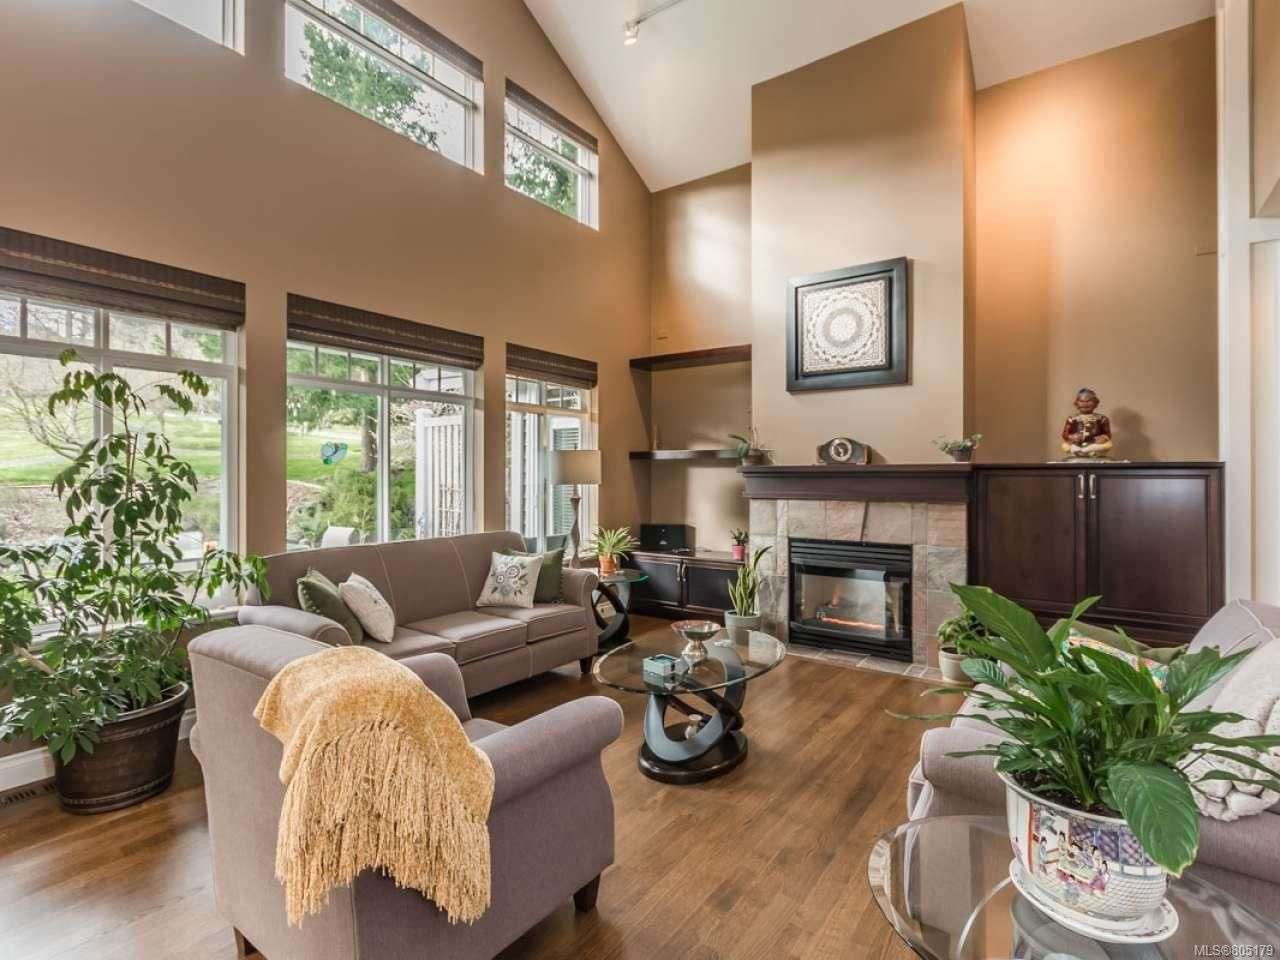 Main Photo: 1302 SATURNA DRIVE in PARKSVILLE: PQ Parksville Row/Townhouse for sale (Parksville/Qualicum)  : MLS®# 805179